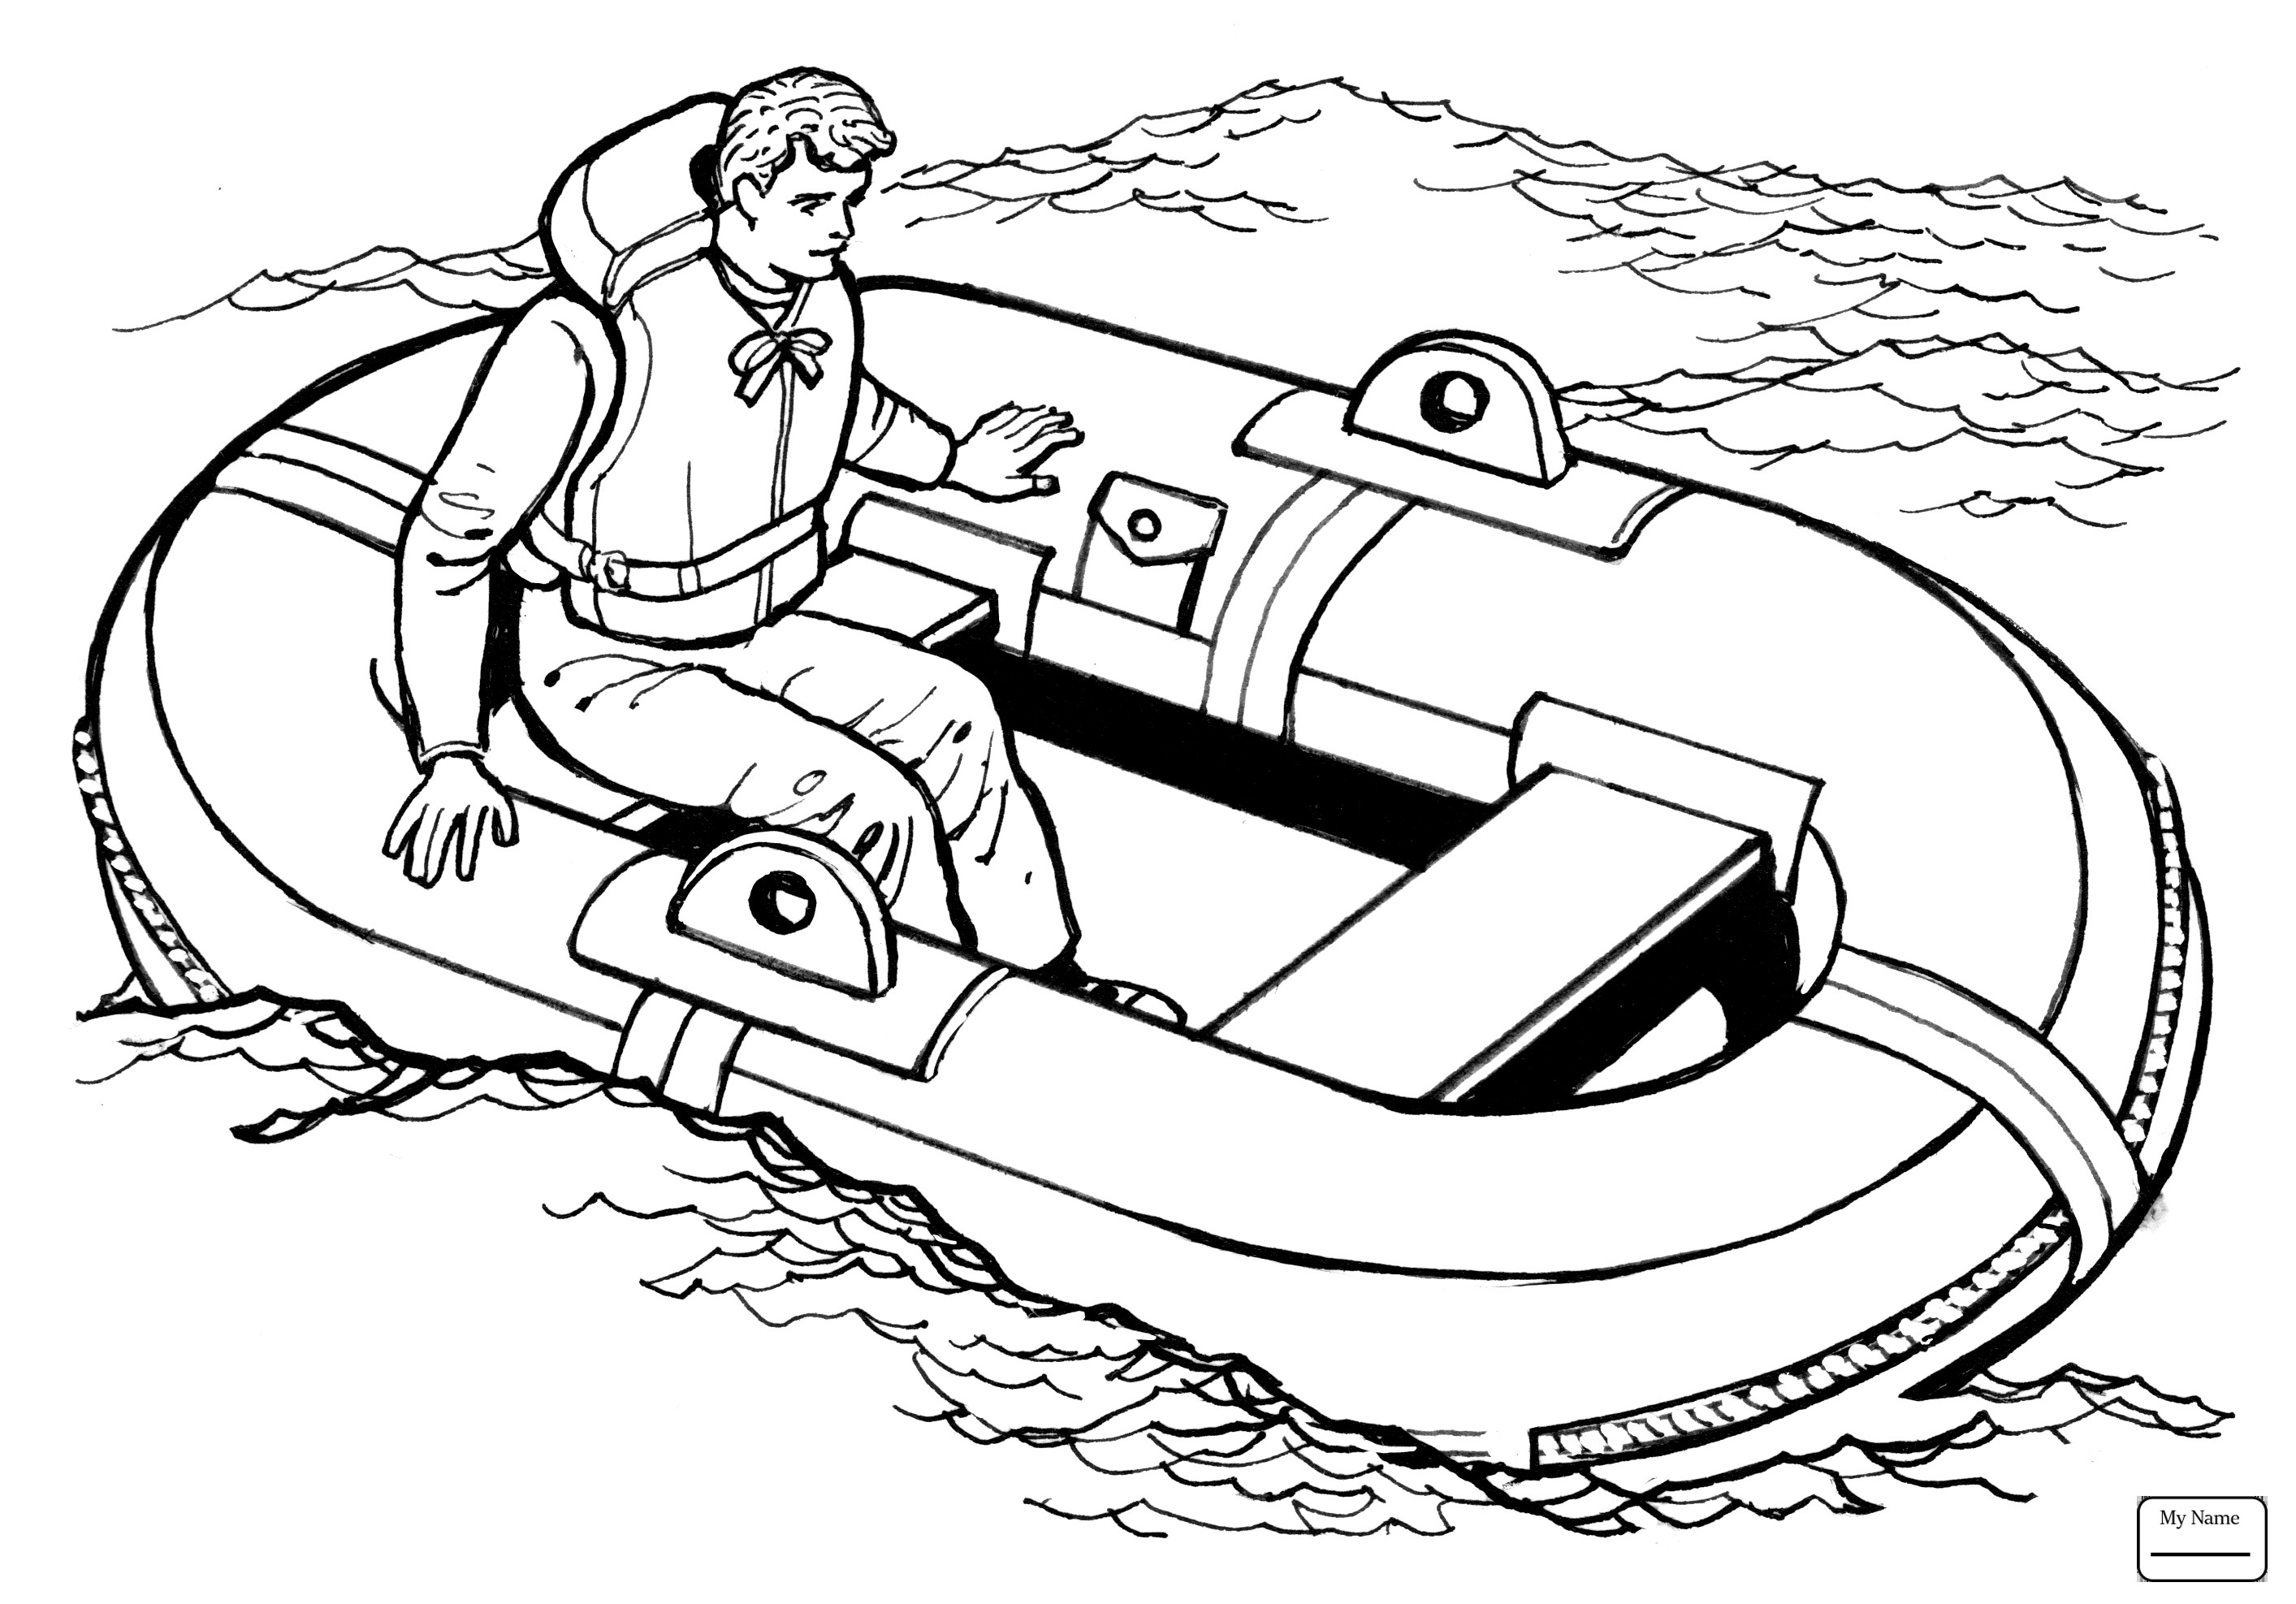 Speed Boat Drawing at GetDrawings.com | Free for personal use Speed ...